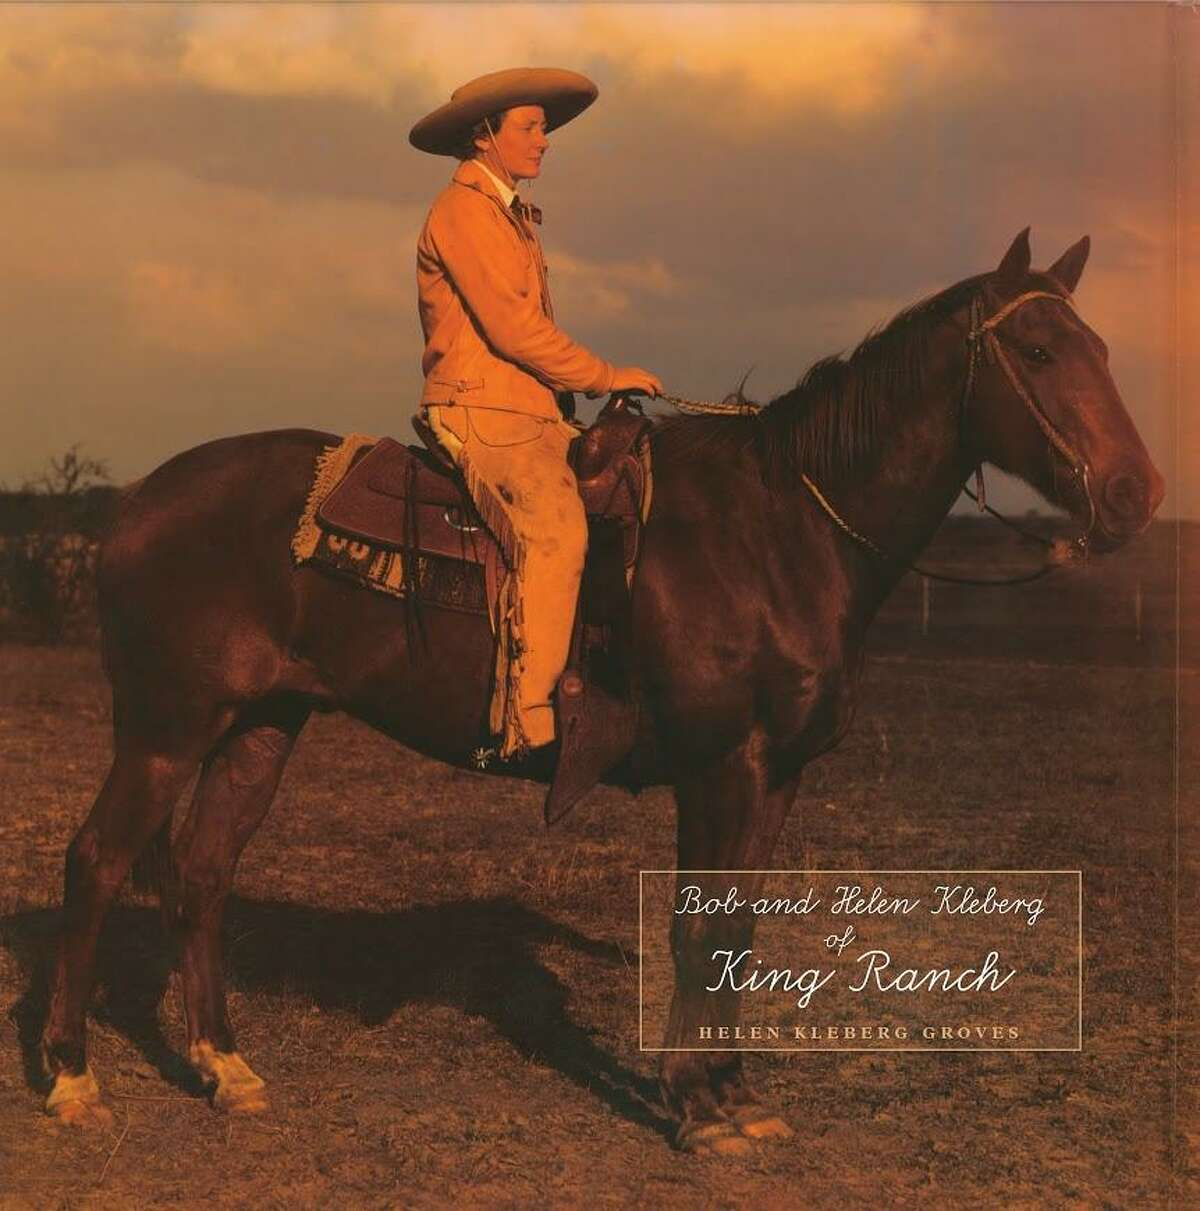 Helen C. Kleberg of the King Ranch sits astride her horse on the cover of the new book